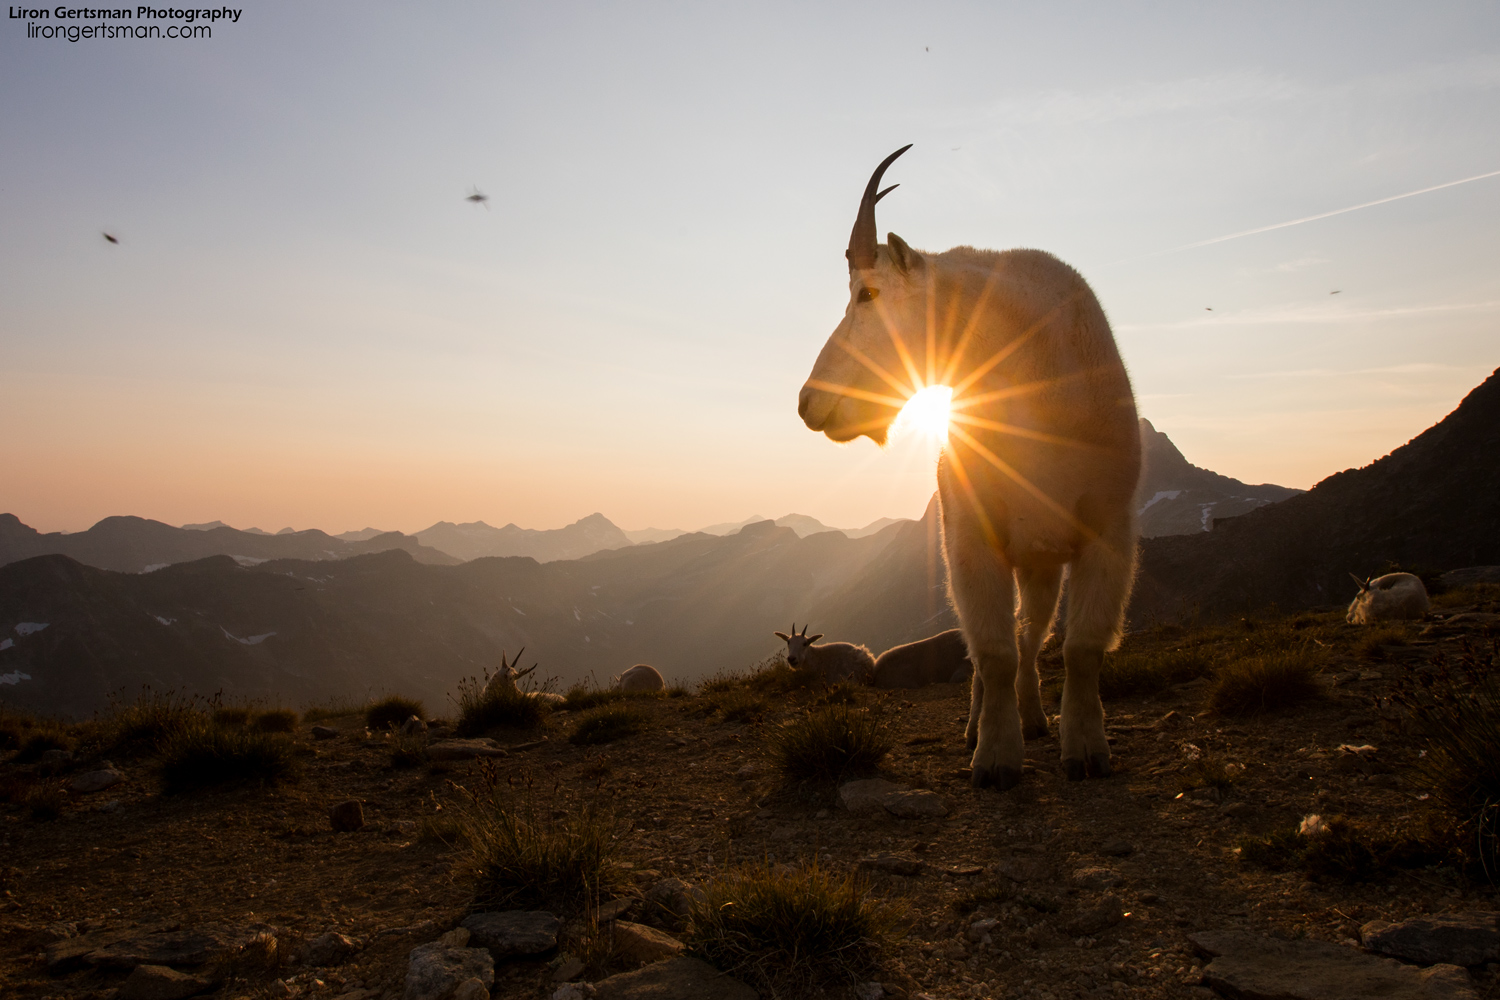 Mountain-Goat-sunset-starburst-web.jpg